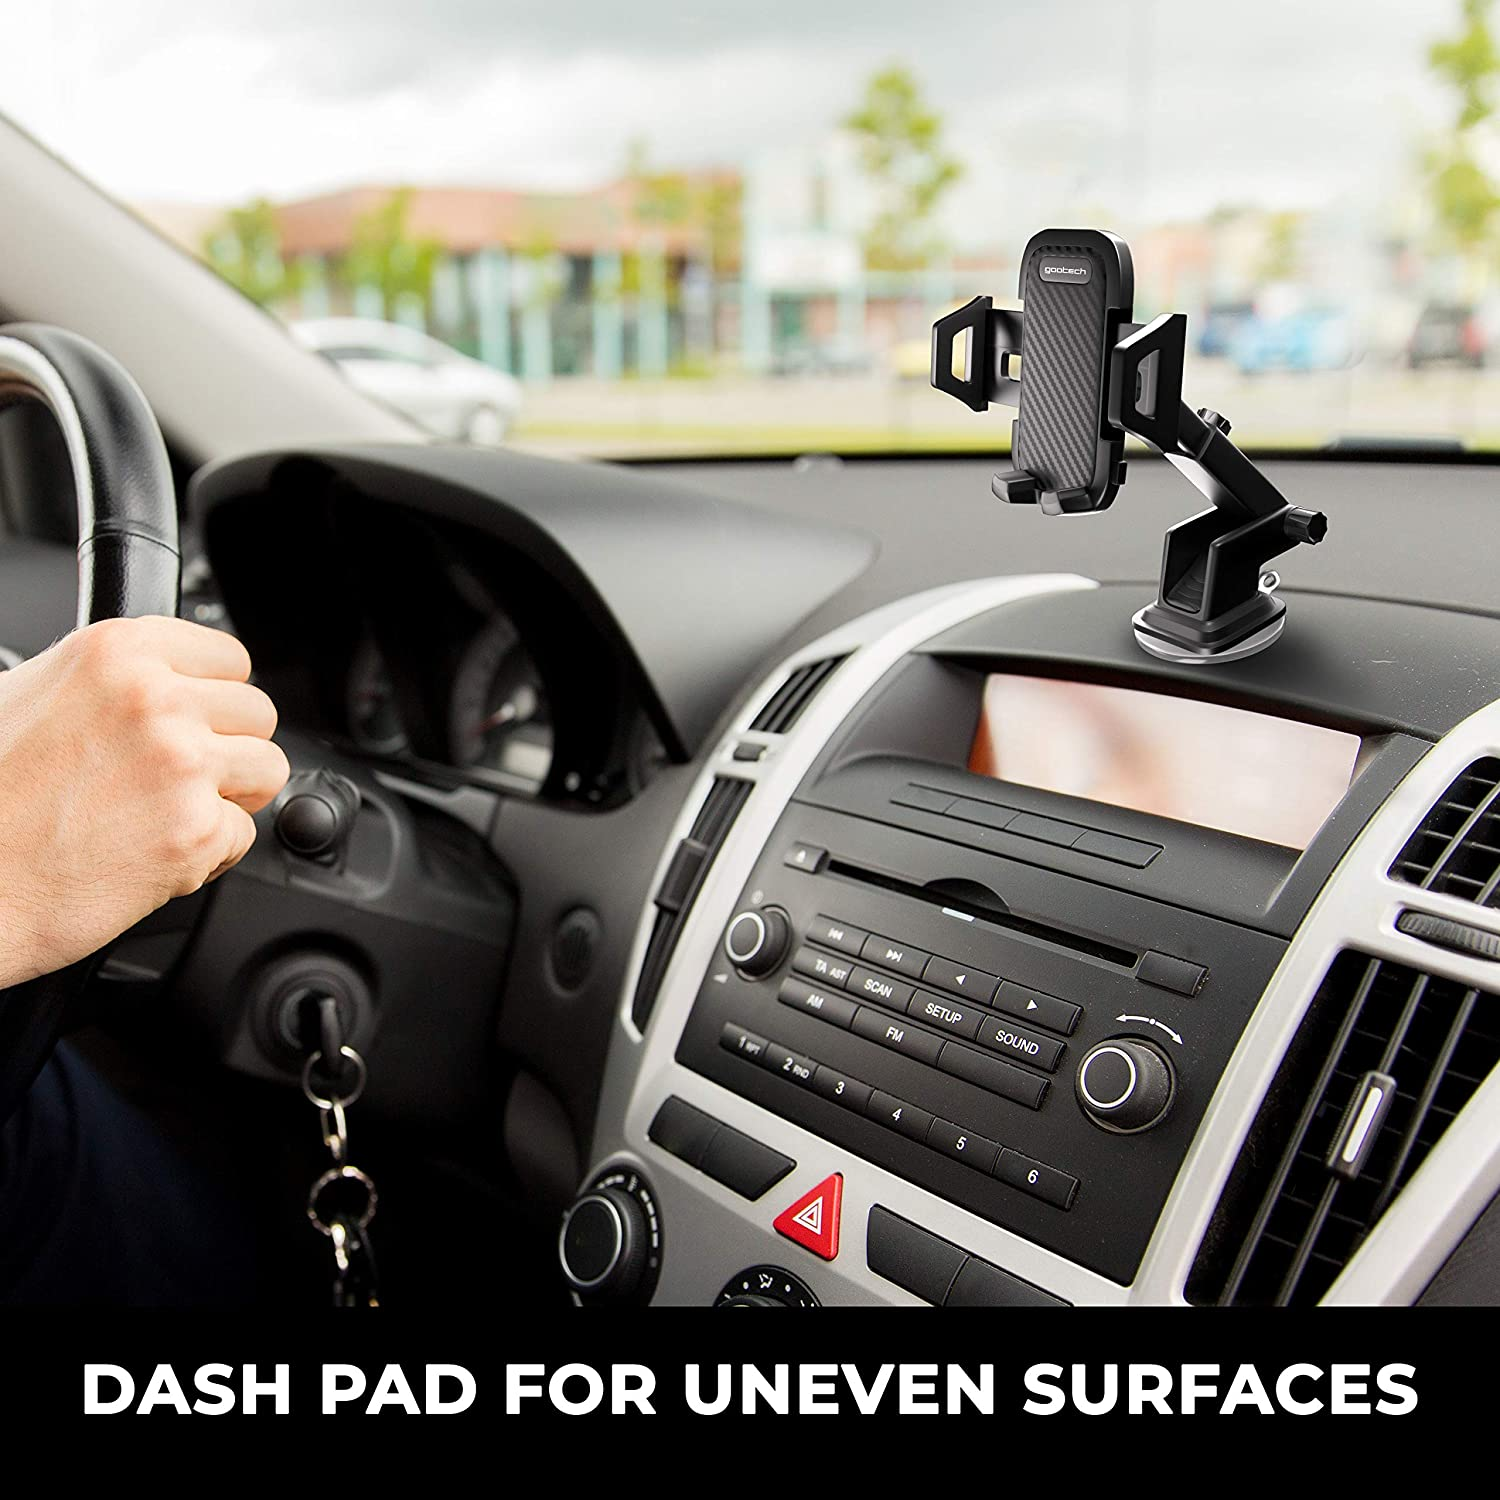 XR Carbon Panel S8+ 8+ 7+ S9 Universal Car Phone Mount S9+ Galaxy S10 S10+ Dashboard /& Windshield Car Phone Holder 6+ 7 Xs Max S8 Compatible with iPhone Xs 8 6 X